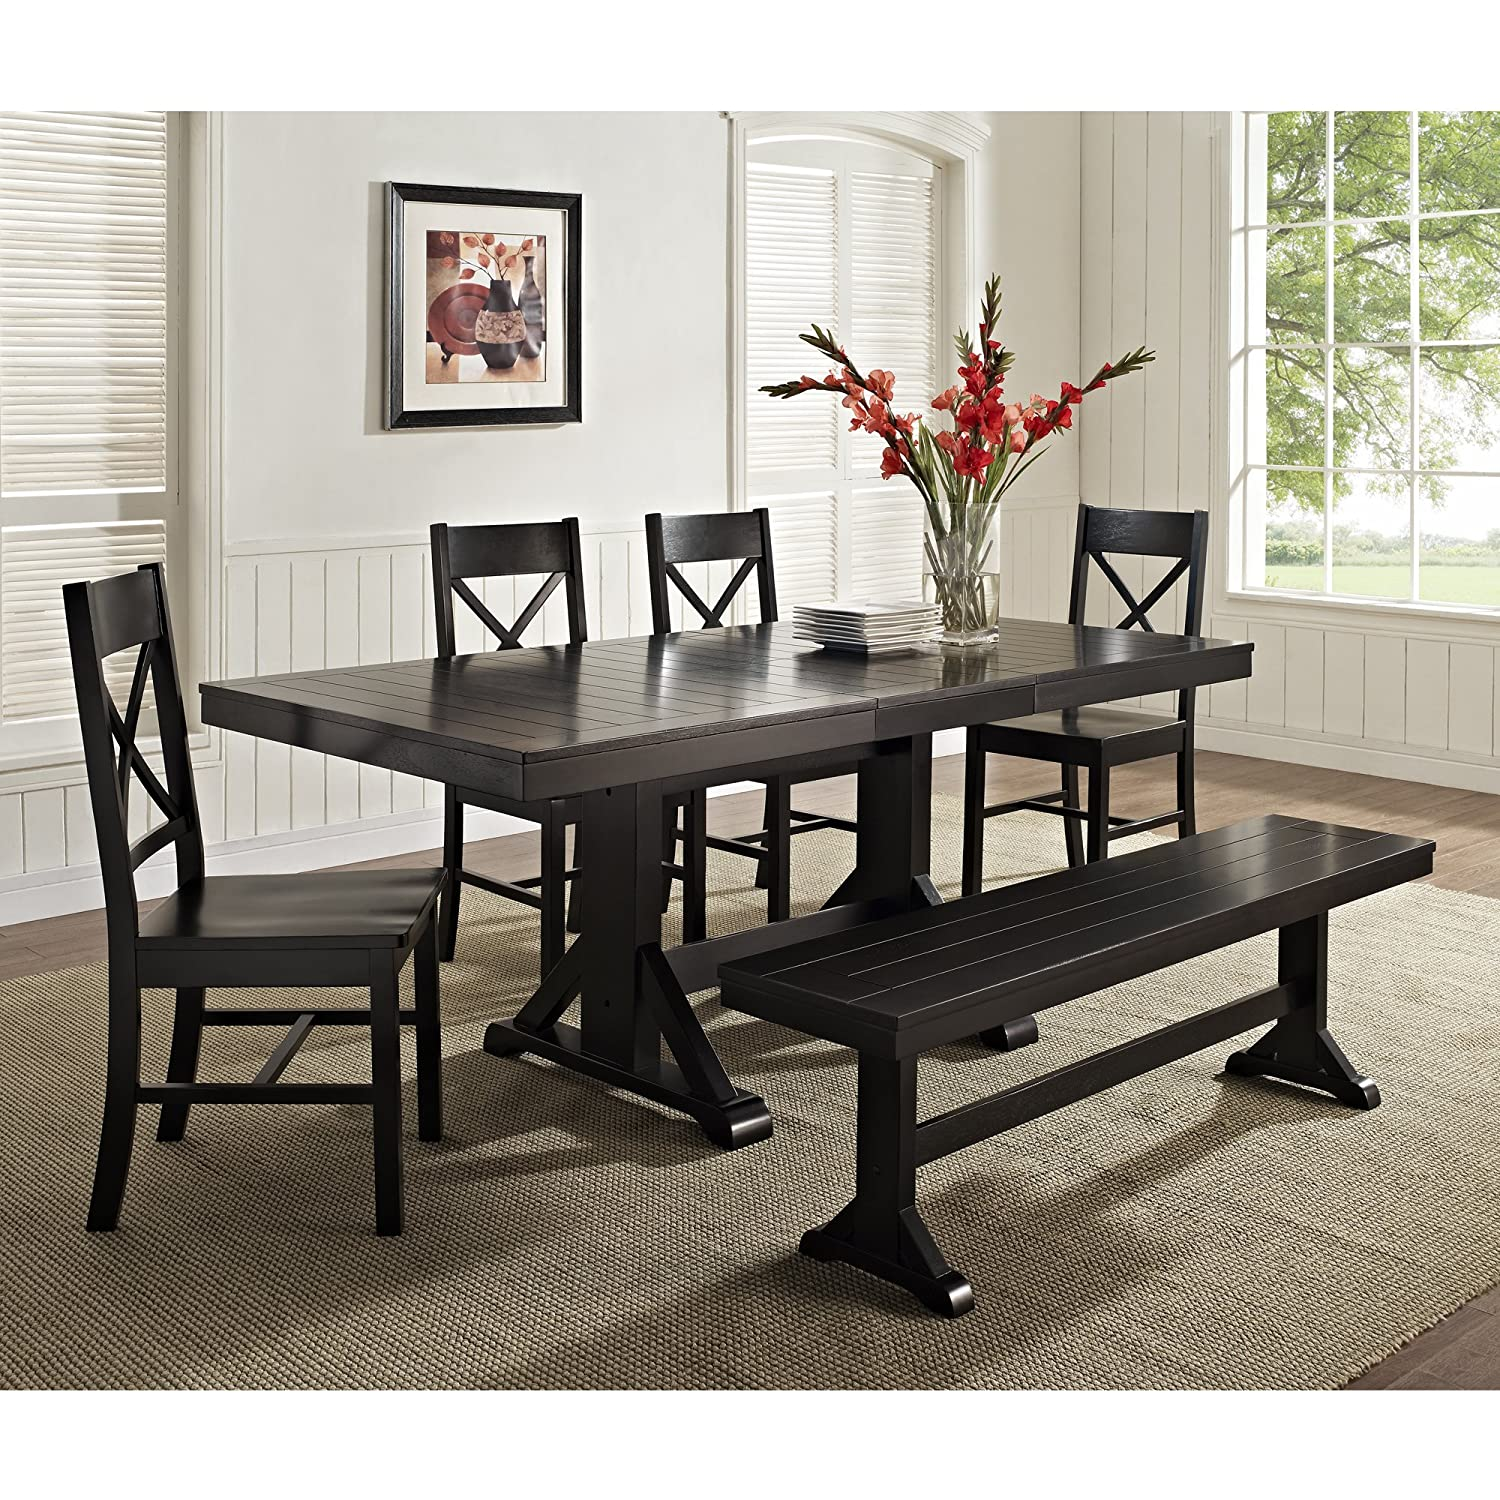 sc 1 st  Amazon.com : dining table bench set - pezcame.com